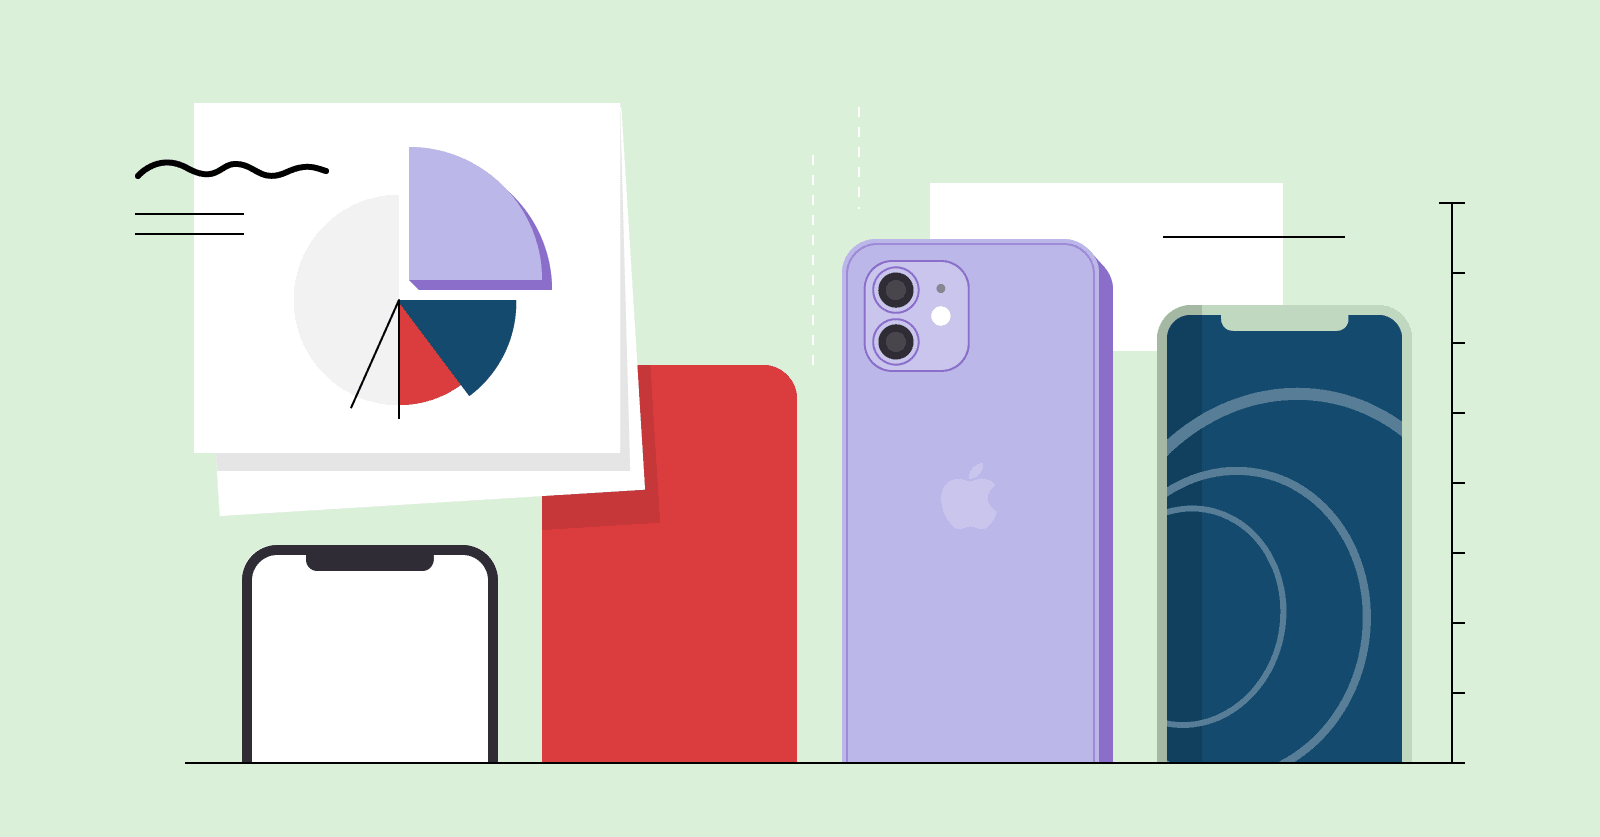 iPhone Users and Sales Stats